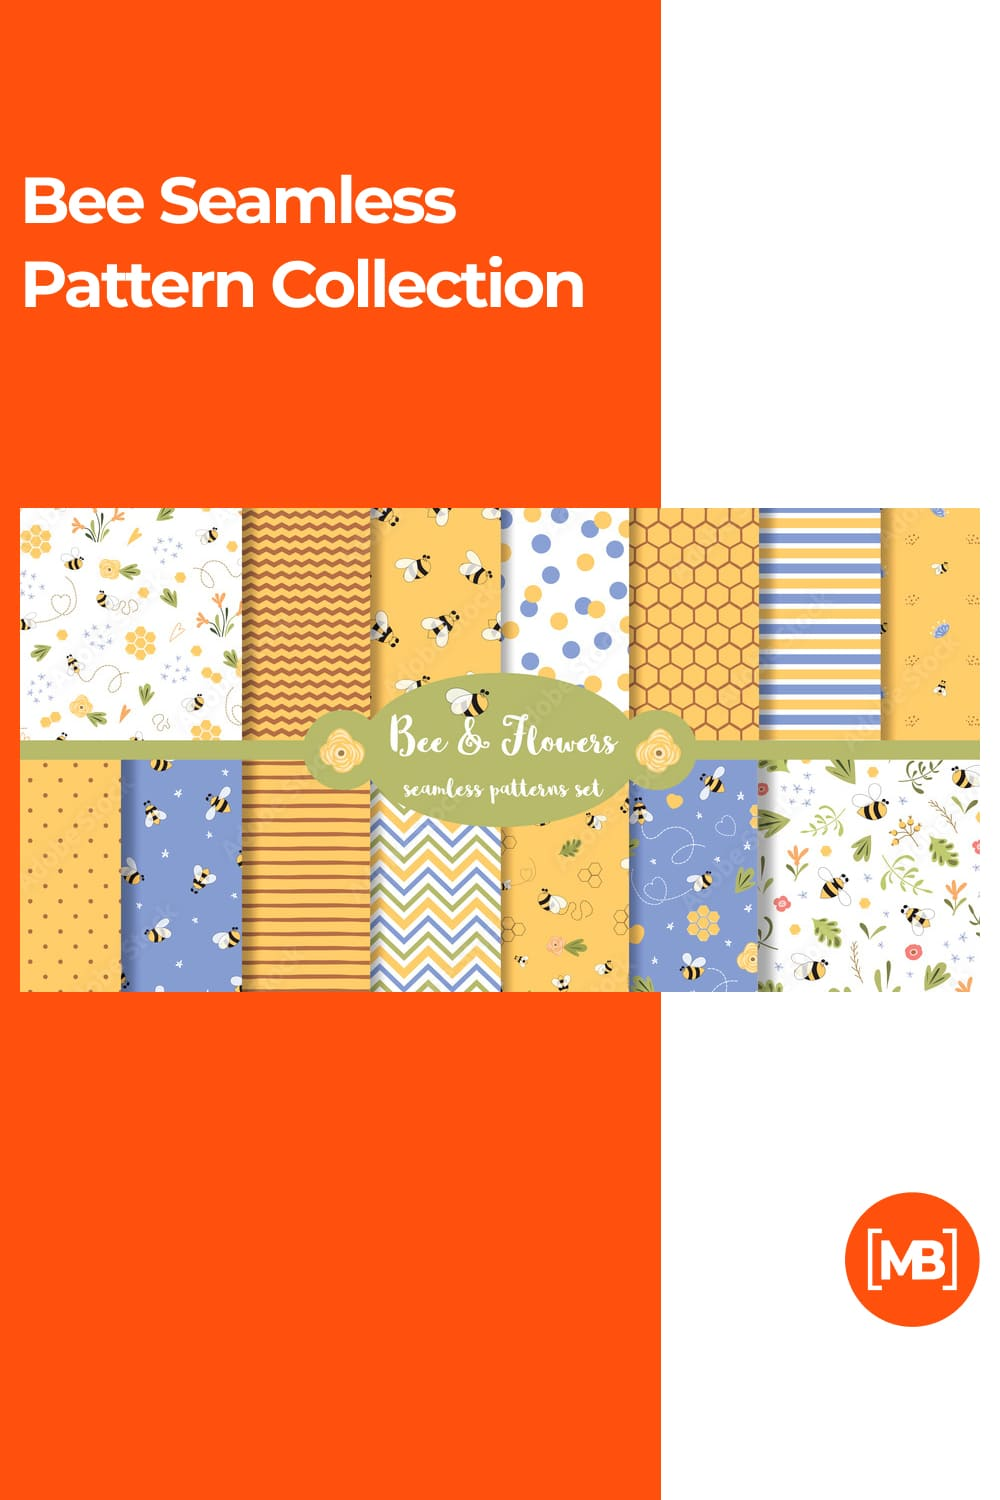 Bee Seamless Pattern Collection.